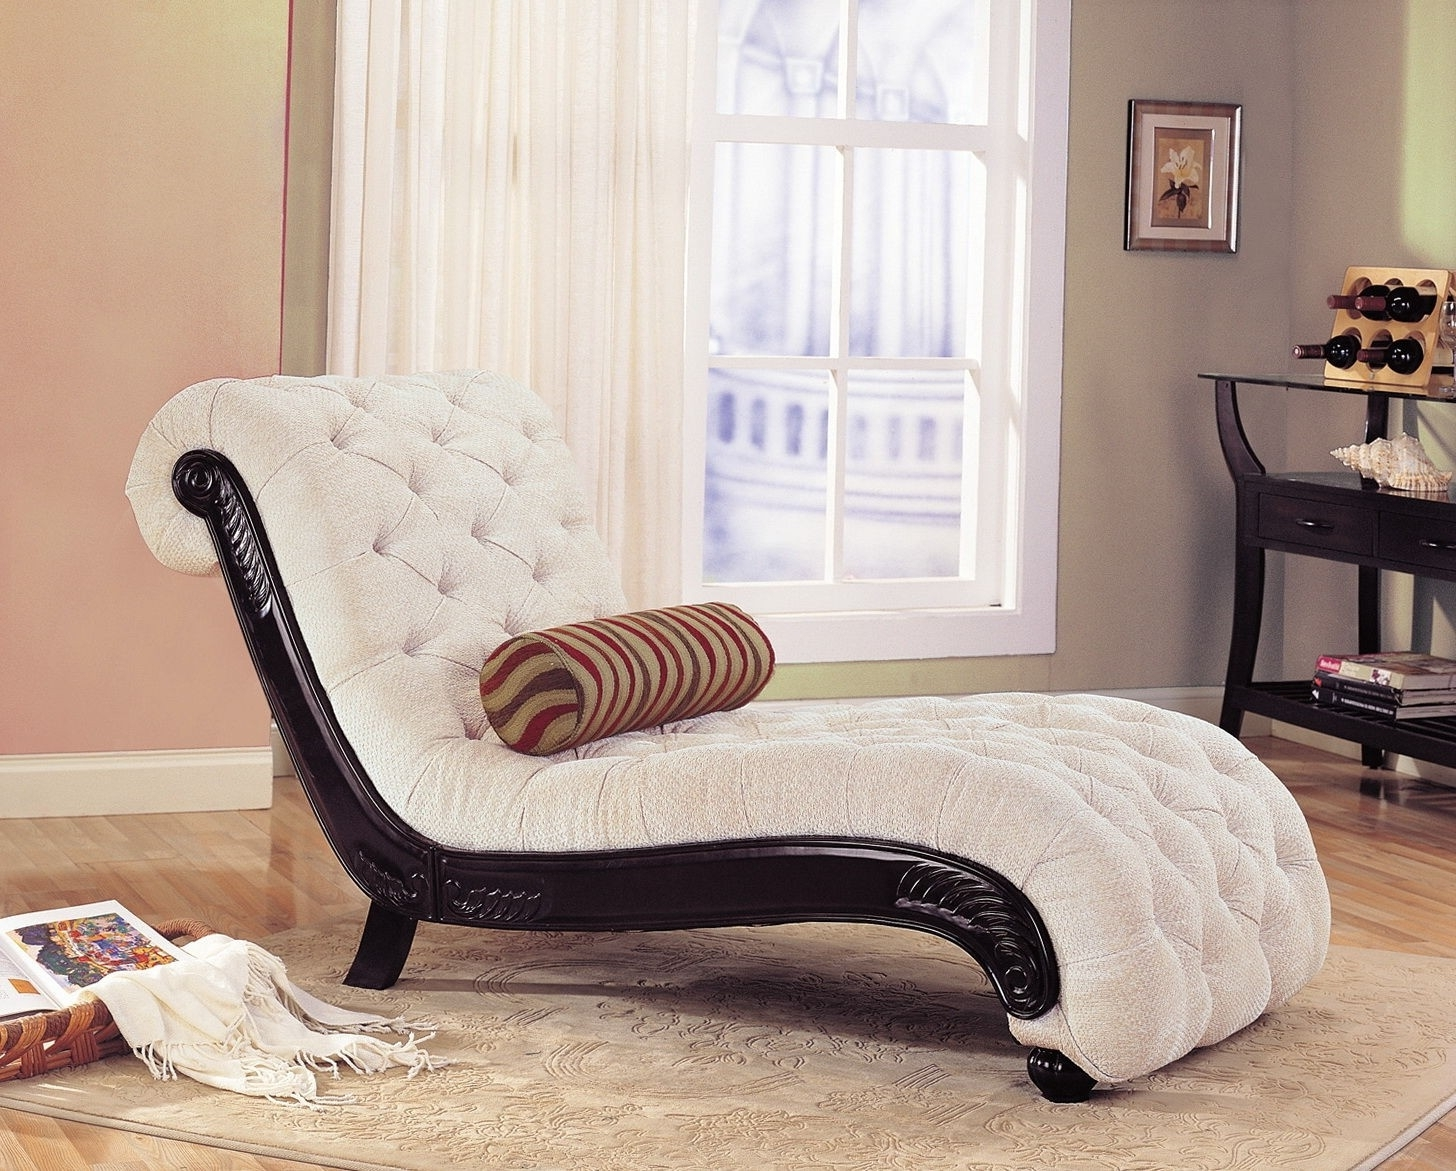 Upholstered Chaise Lounge Chairs For Preferred Chaise Lounge Chairs For Bedroom Chaise Lounge Chairs For Bedroom (View 10 of 15)